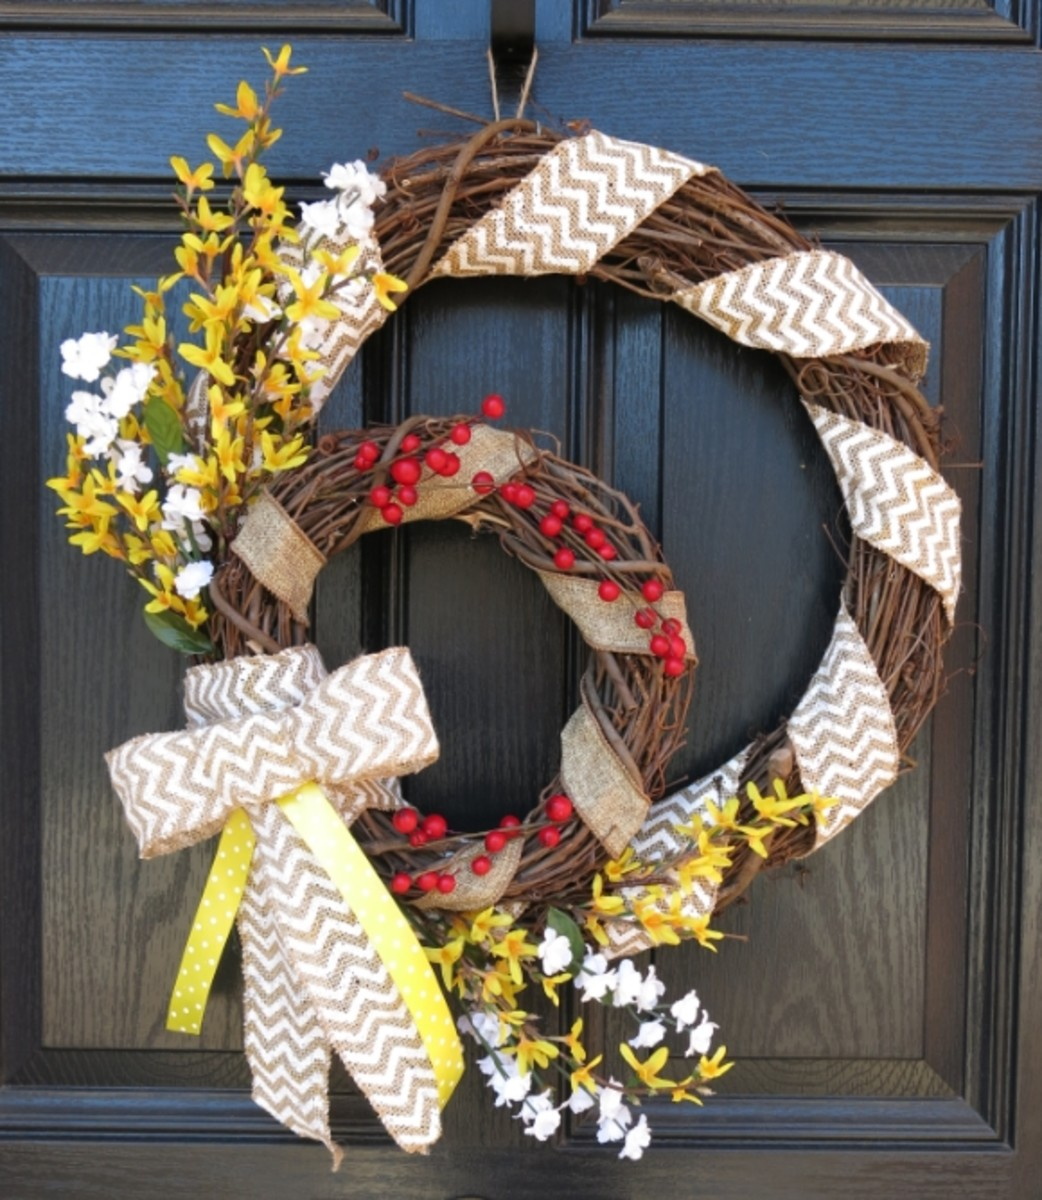 DIY Double Grapevine Welcome Wreath Tutorial